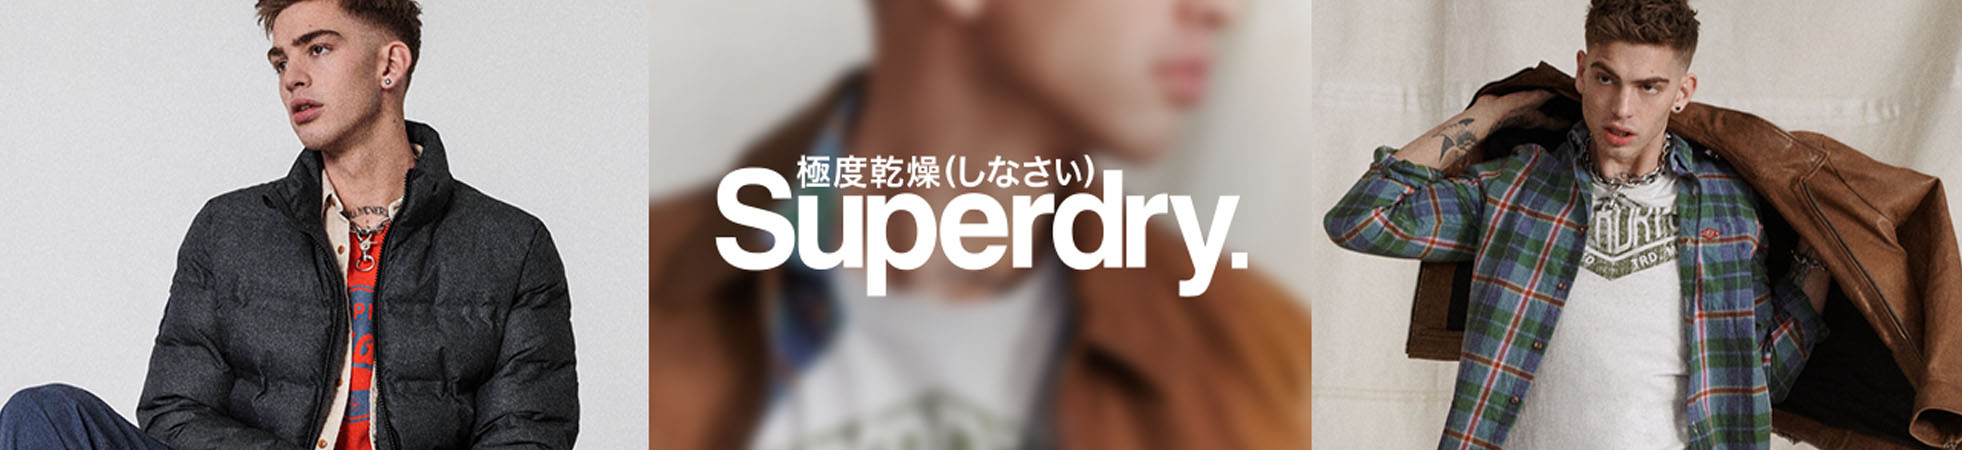 Superdry Men's Clothing